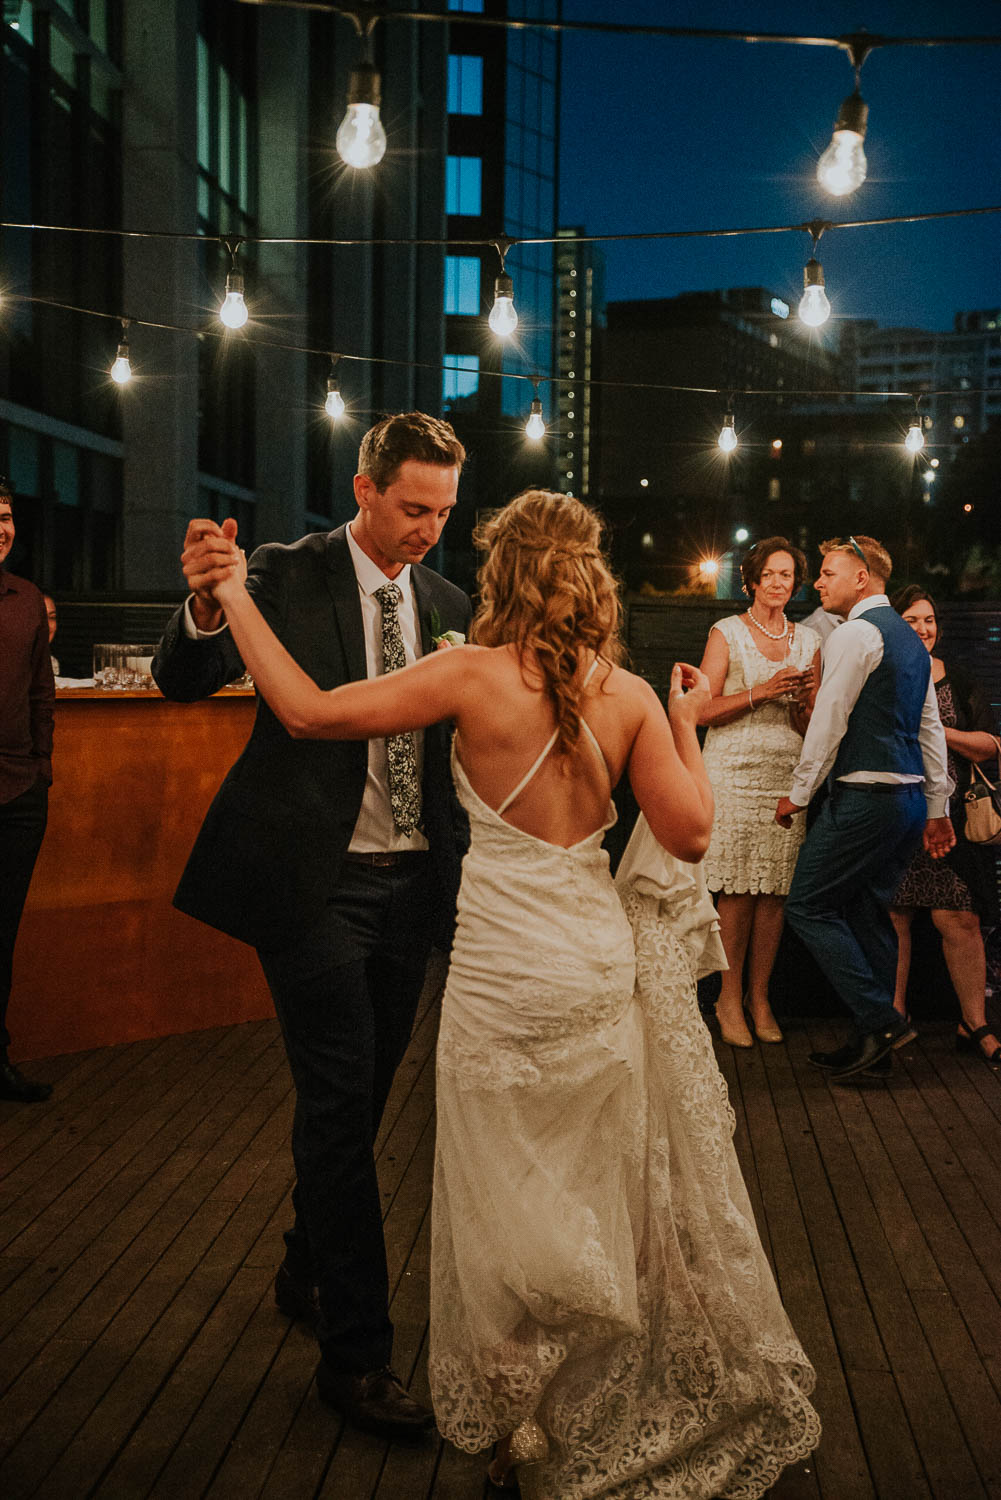 auckland-wedding-photographer-urban-city-90